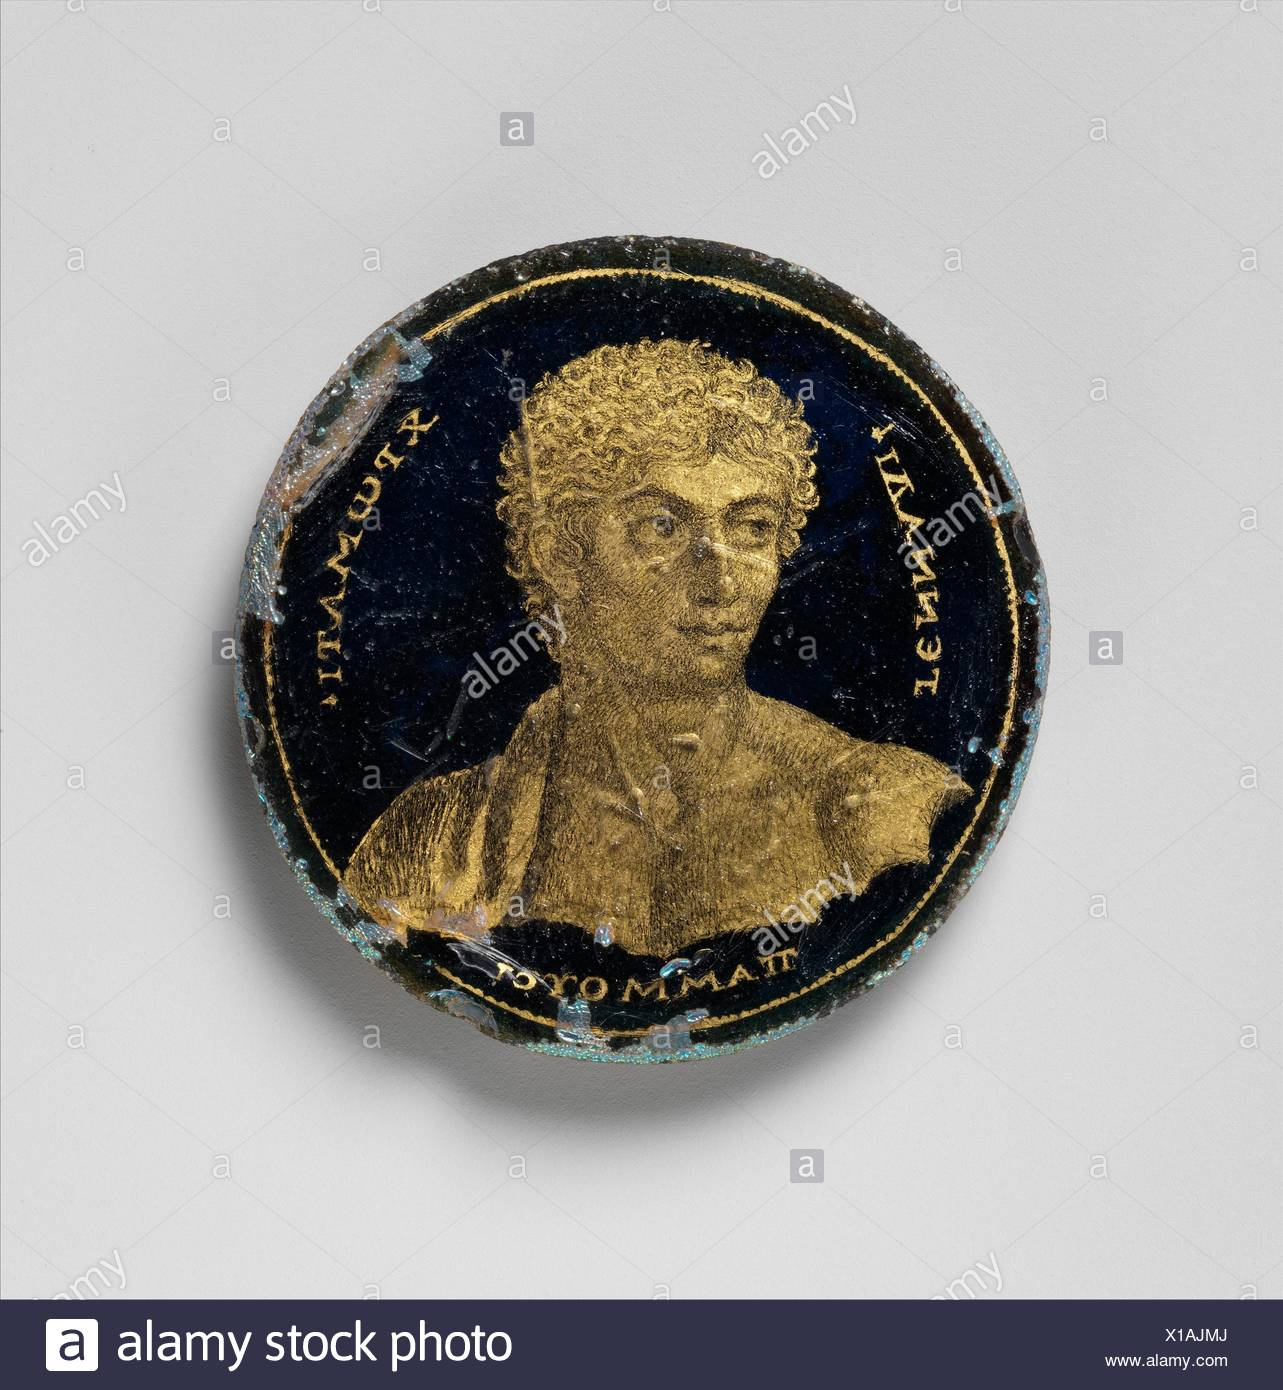 Medallion with a Portrait of Gennadios. Date: 250-300; Geography: Made in Alexandria, Egypt; Culture: Roman; Medium: Glass, gold leaf, polychromy; - Stock Image